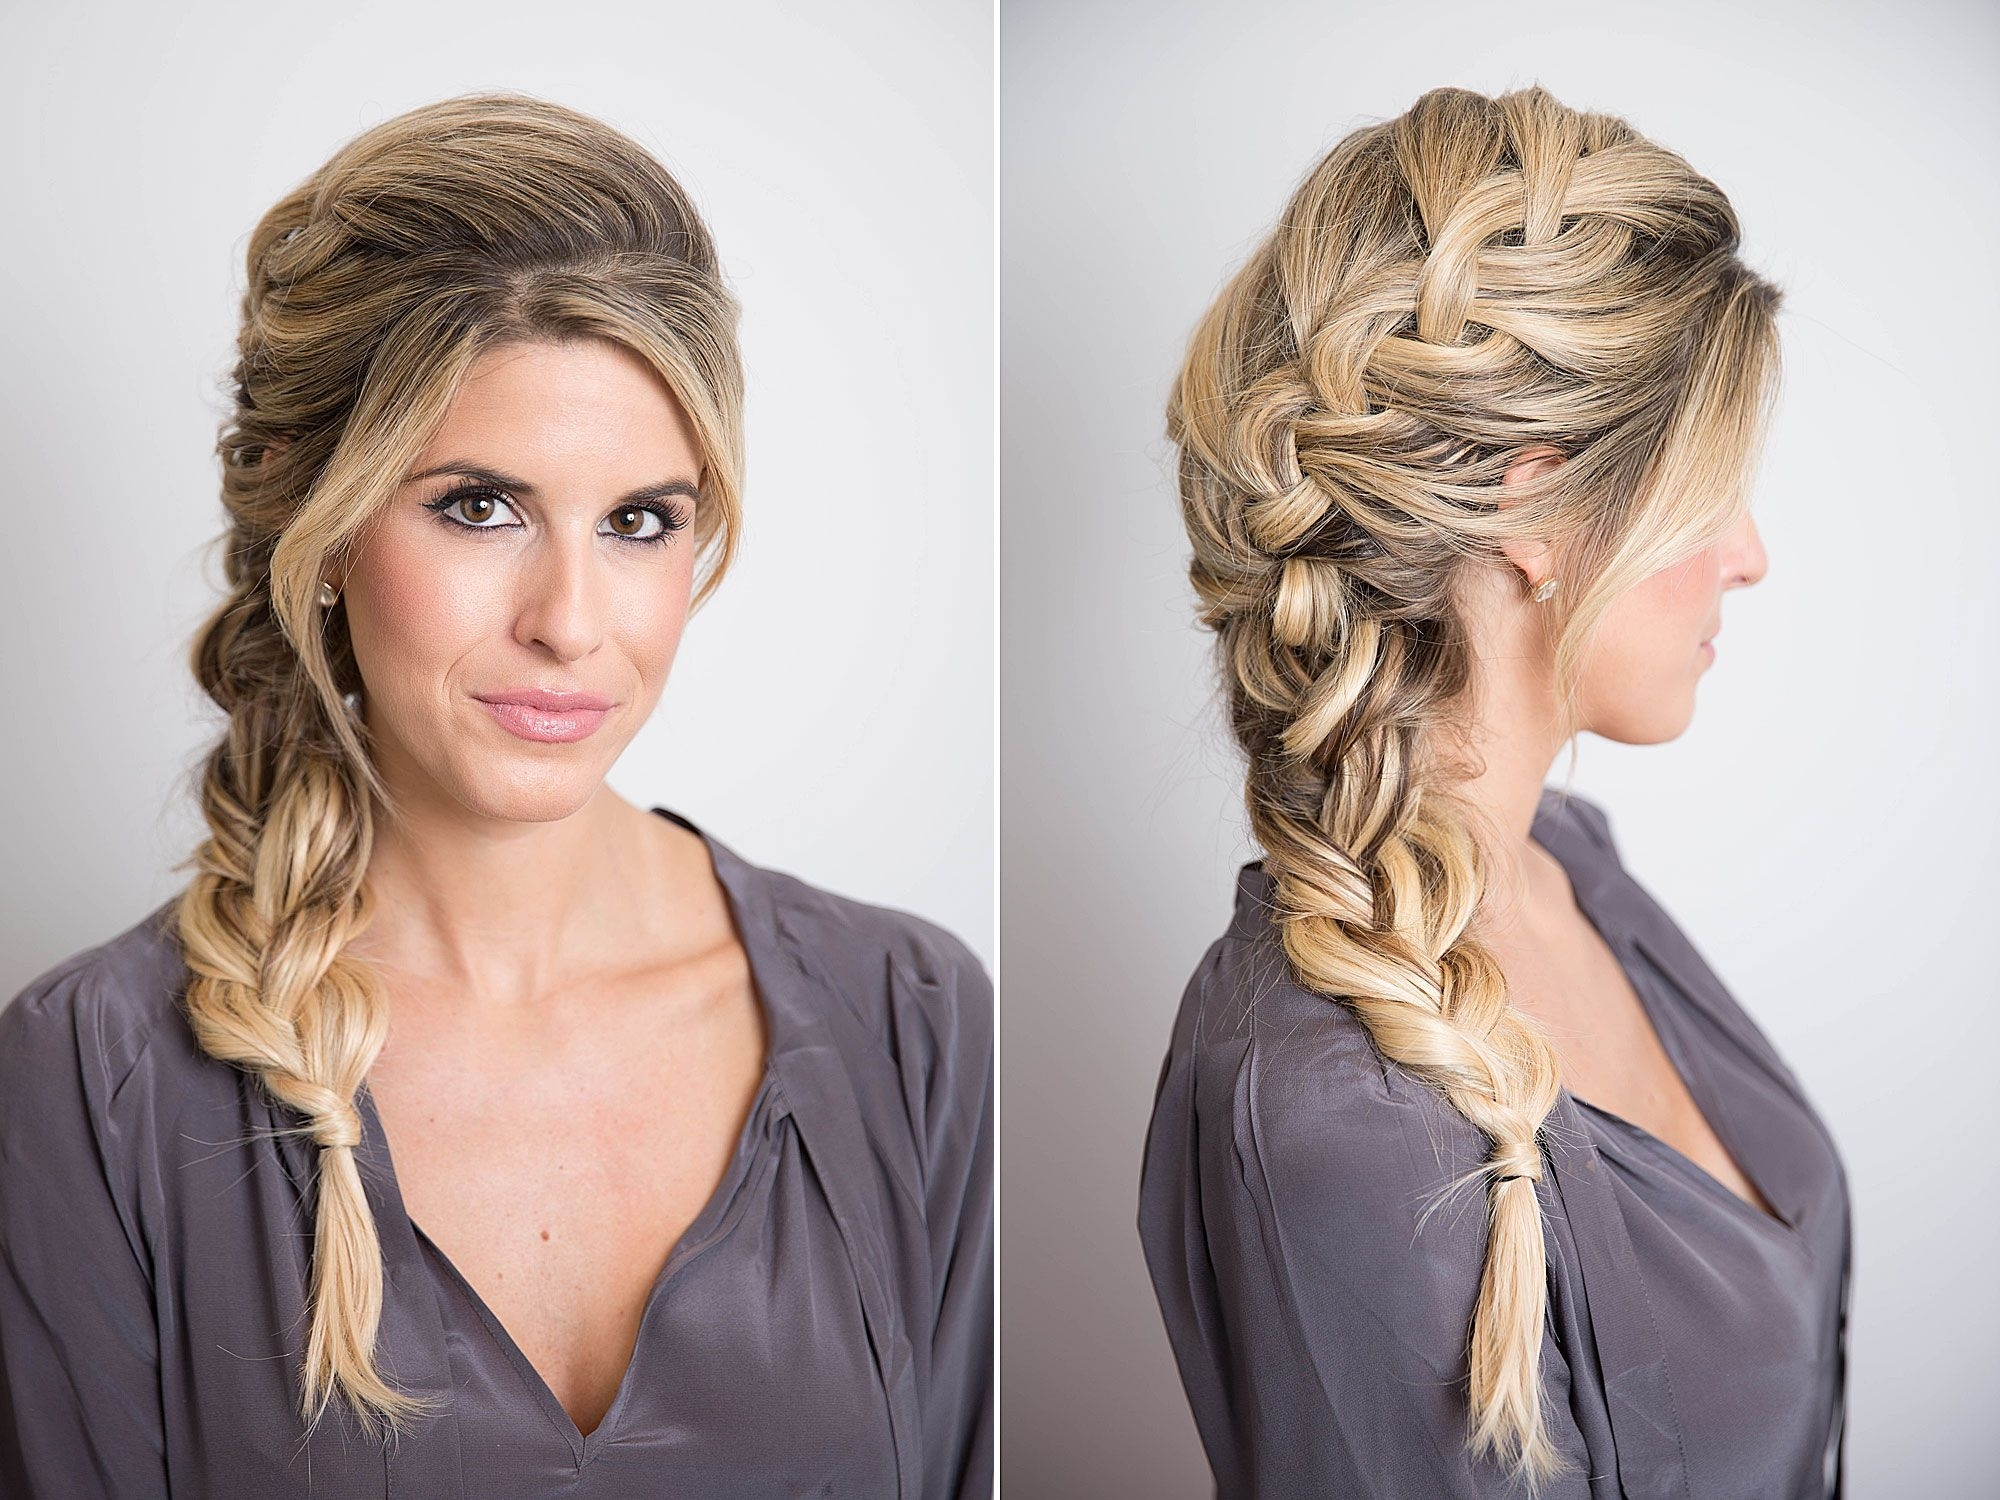 17 Braided Hairstyles With Gifs – How To Do Every Type Of Braid With Recent Pretty Messy Pony Hairstyles With Braided Section (View 18 of 20)